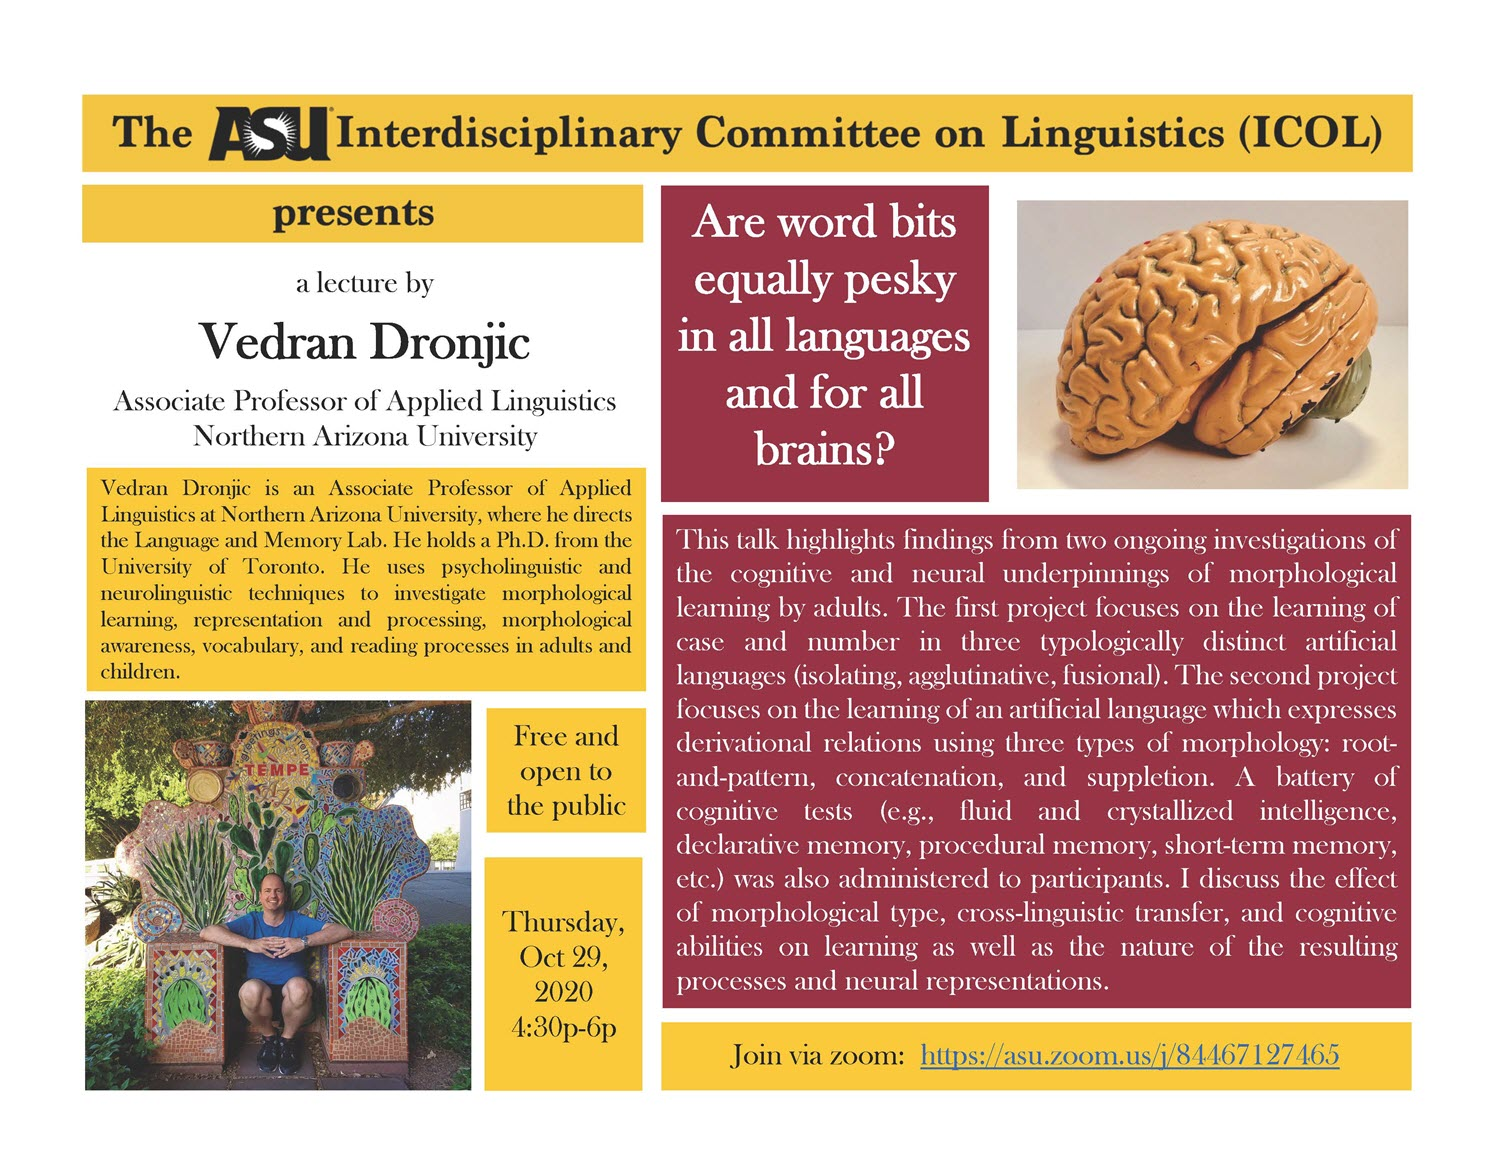 Image of flyer for Oct. 29 ICOL event at ASU